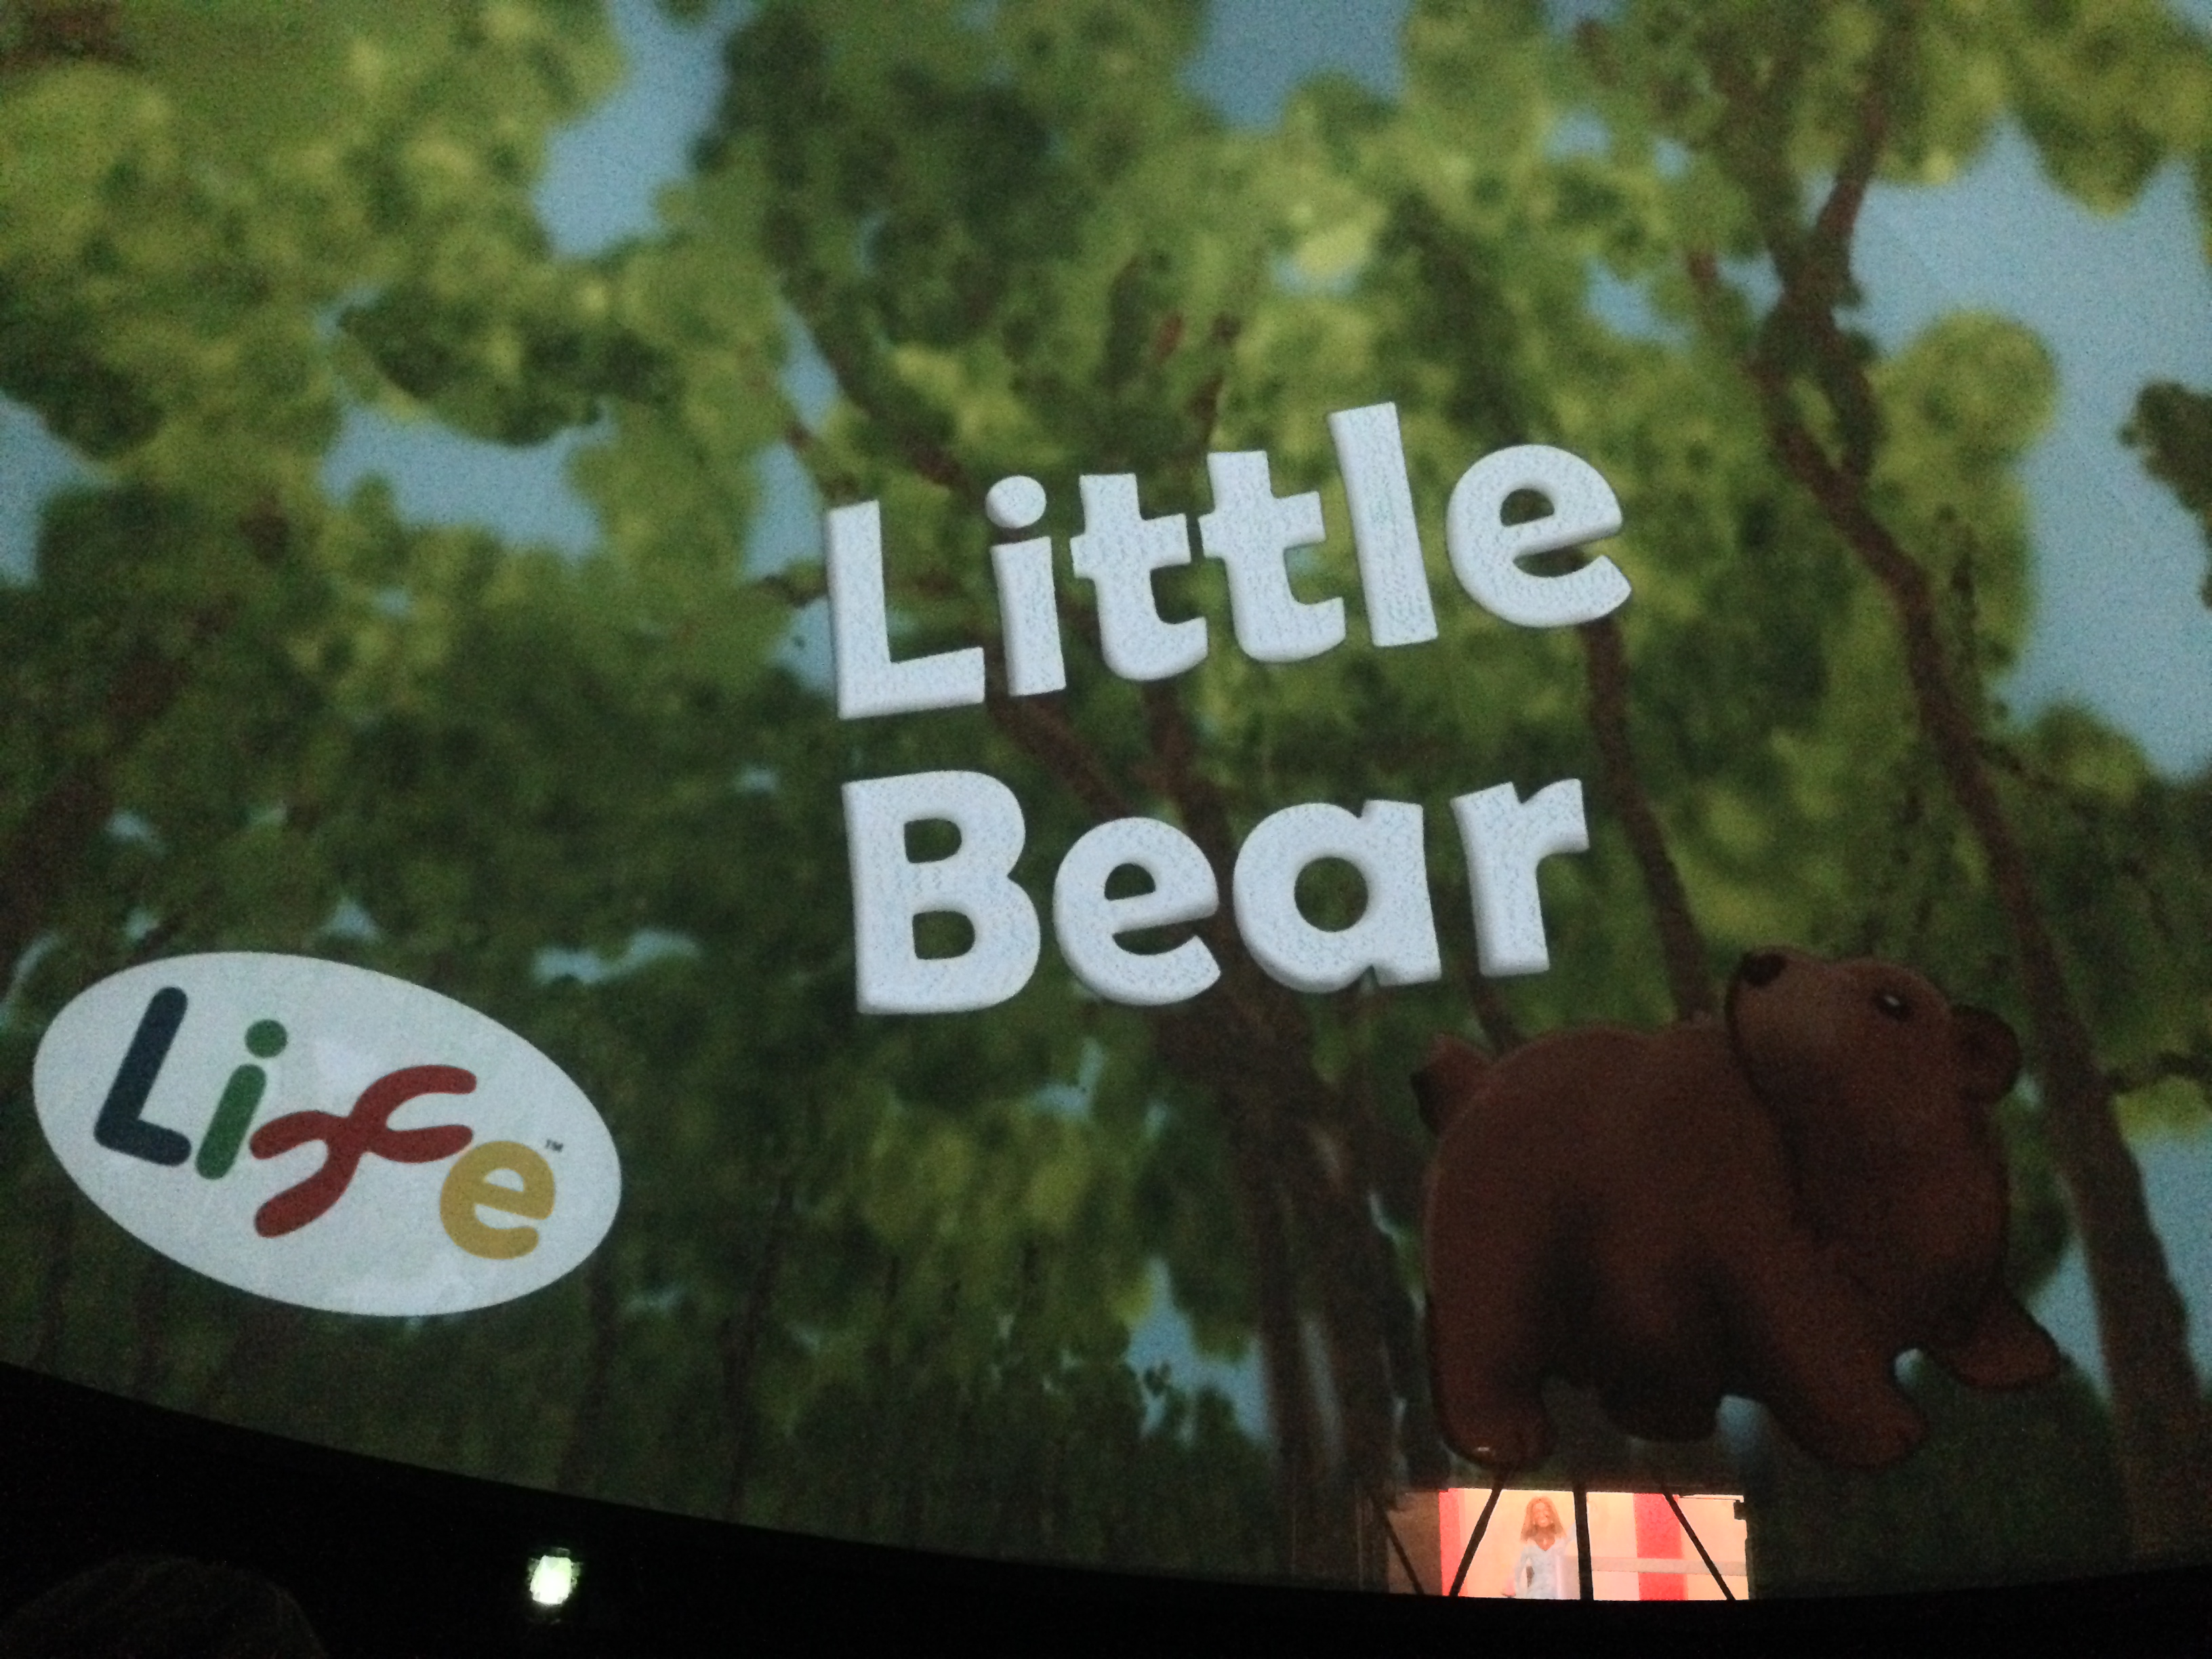 Planetarium show Little Bear at Centre for Life